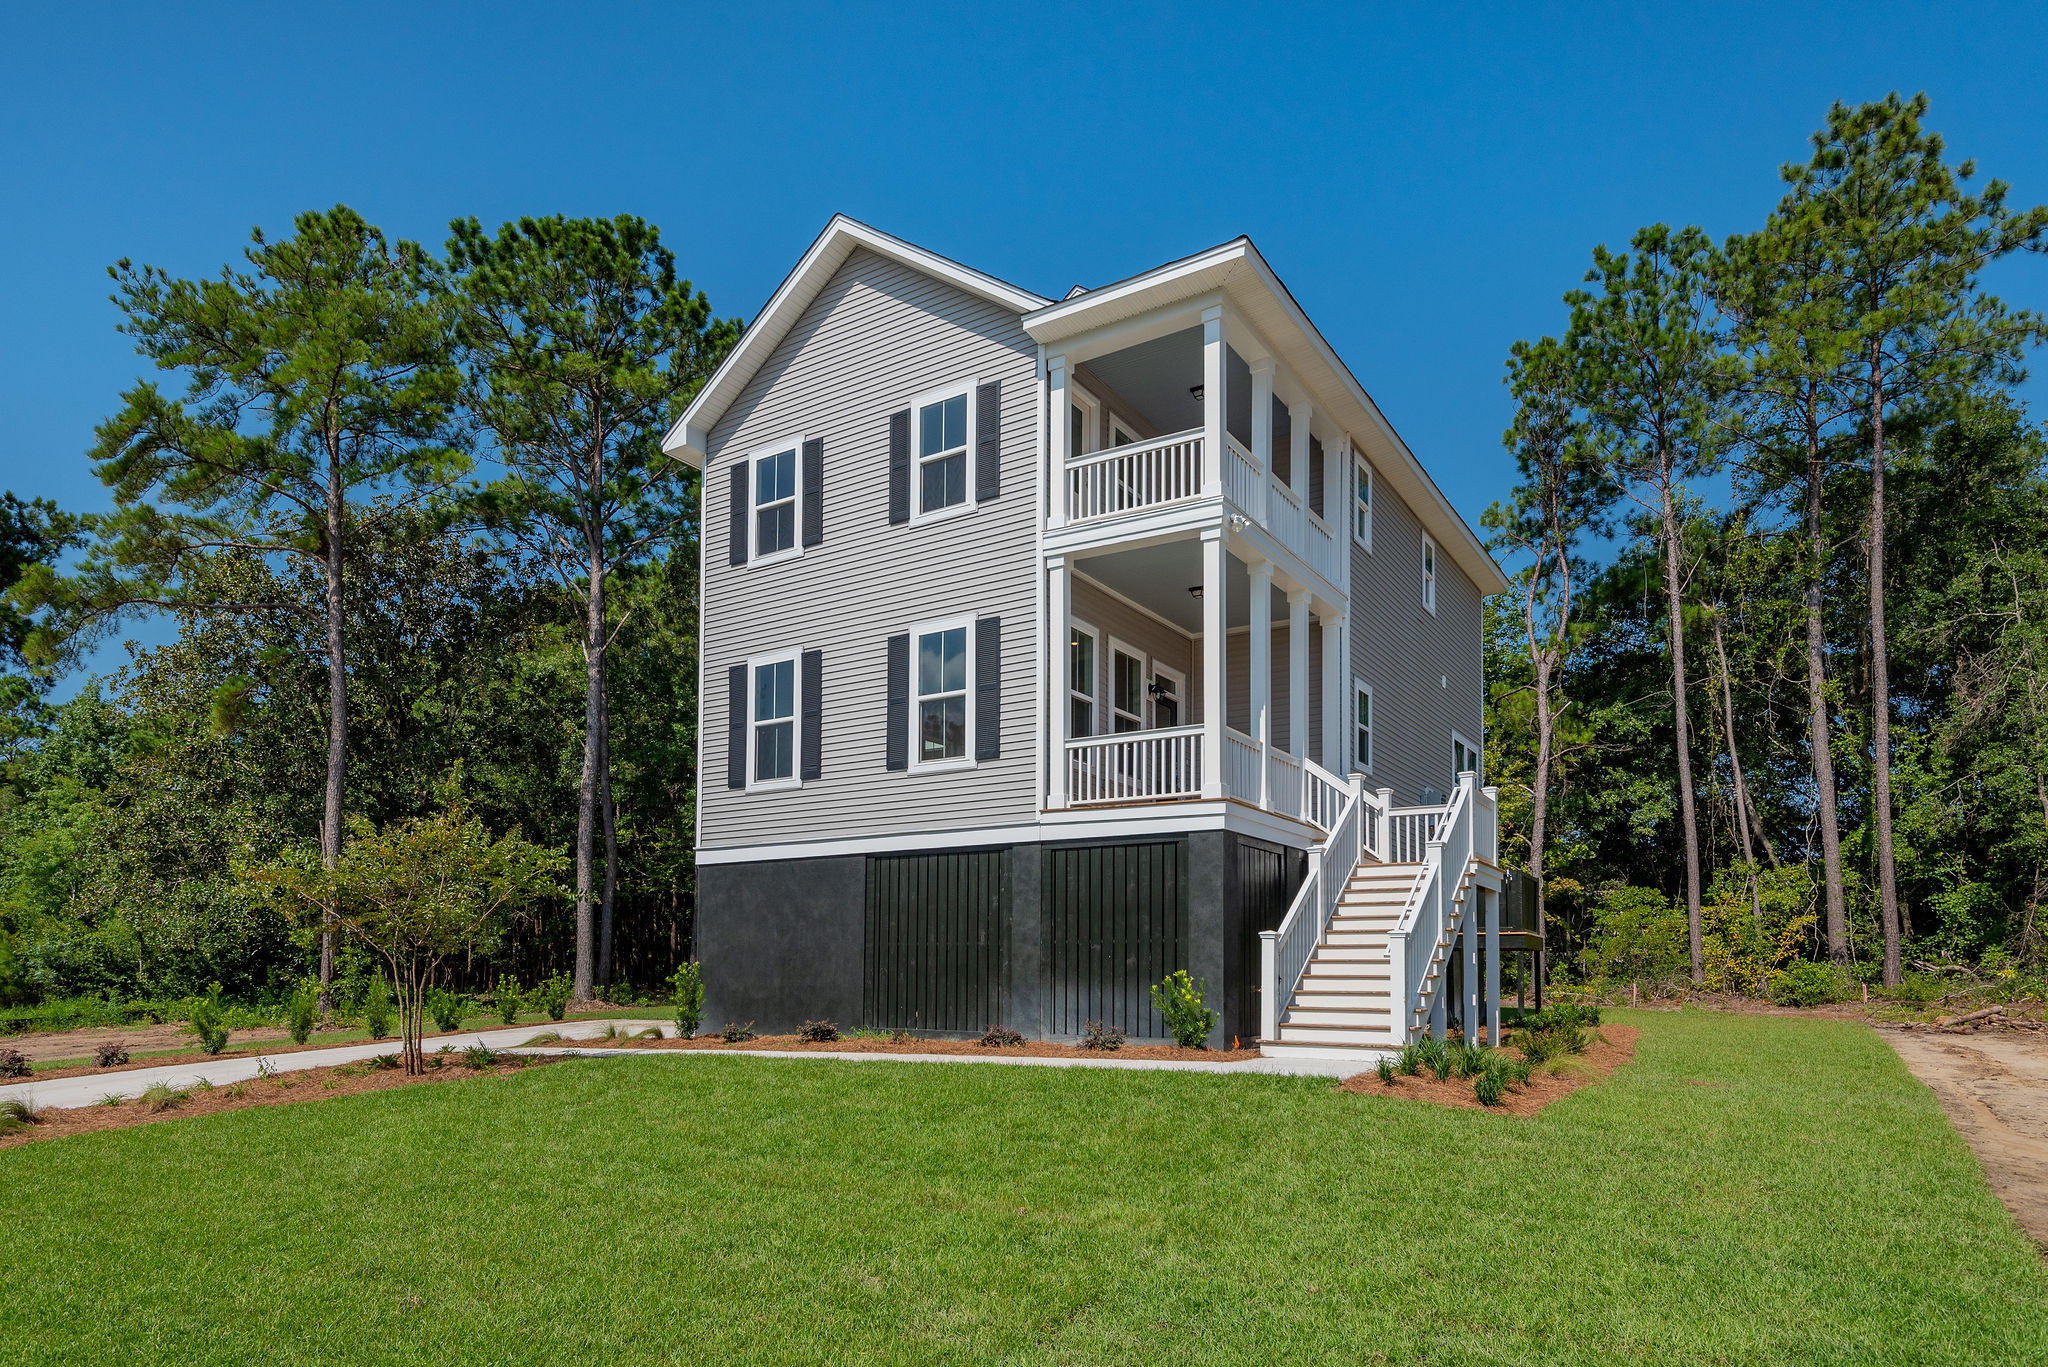 The Cove at Martins Creek Homes For Sale - 117 Martins Point, Wando, SC - 34